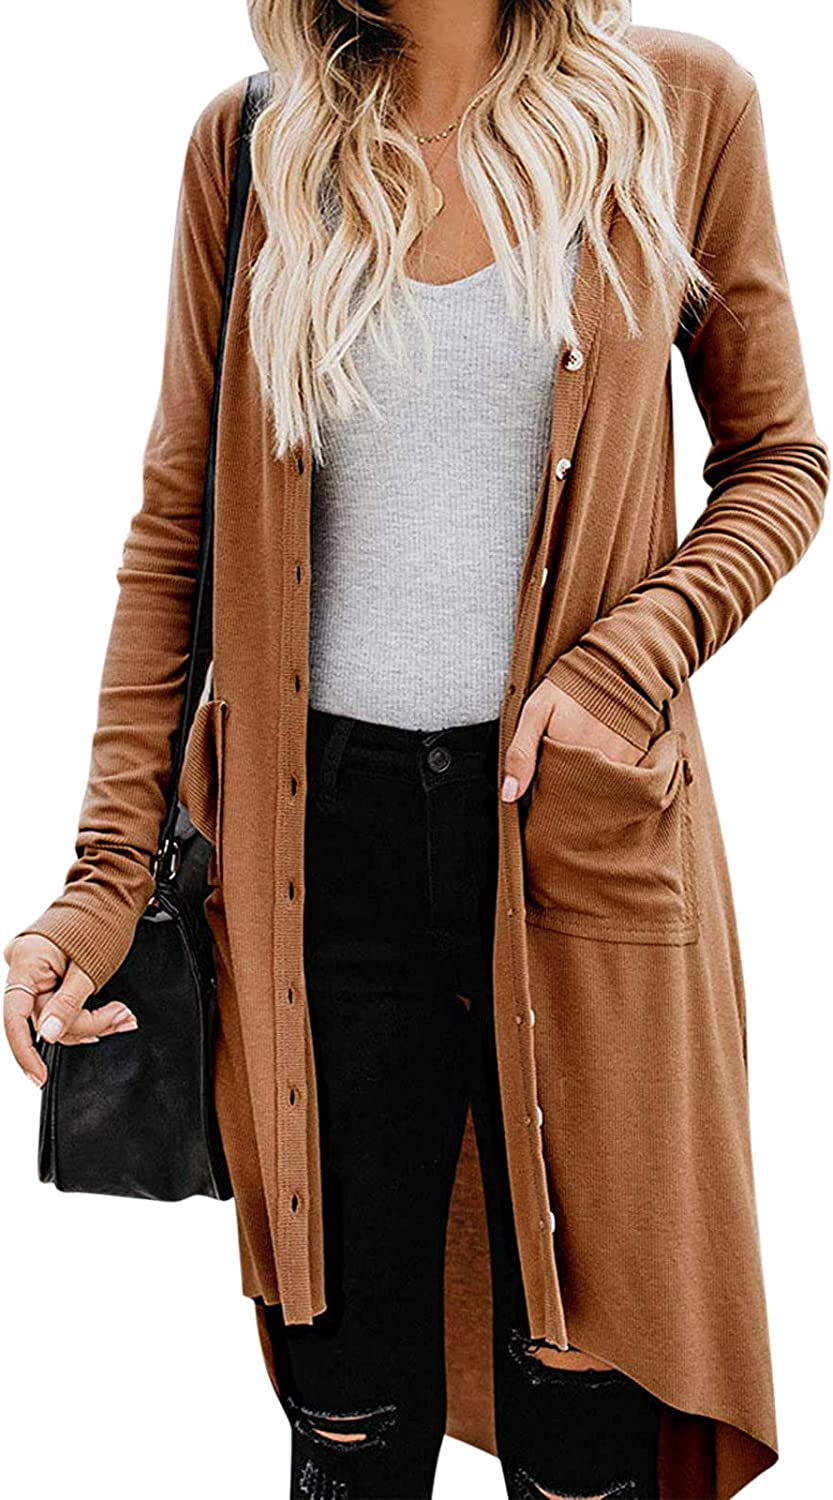 HONGJ Cardigan for Womens, Fashion Long Sleeve Open Front Drape Lightweight Coat Leisure Button Long Dusters with Pocket